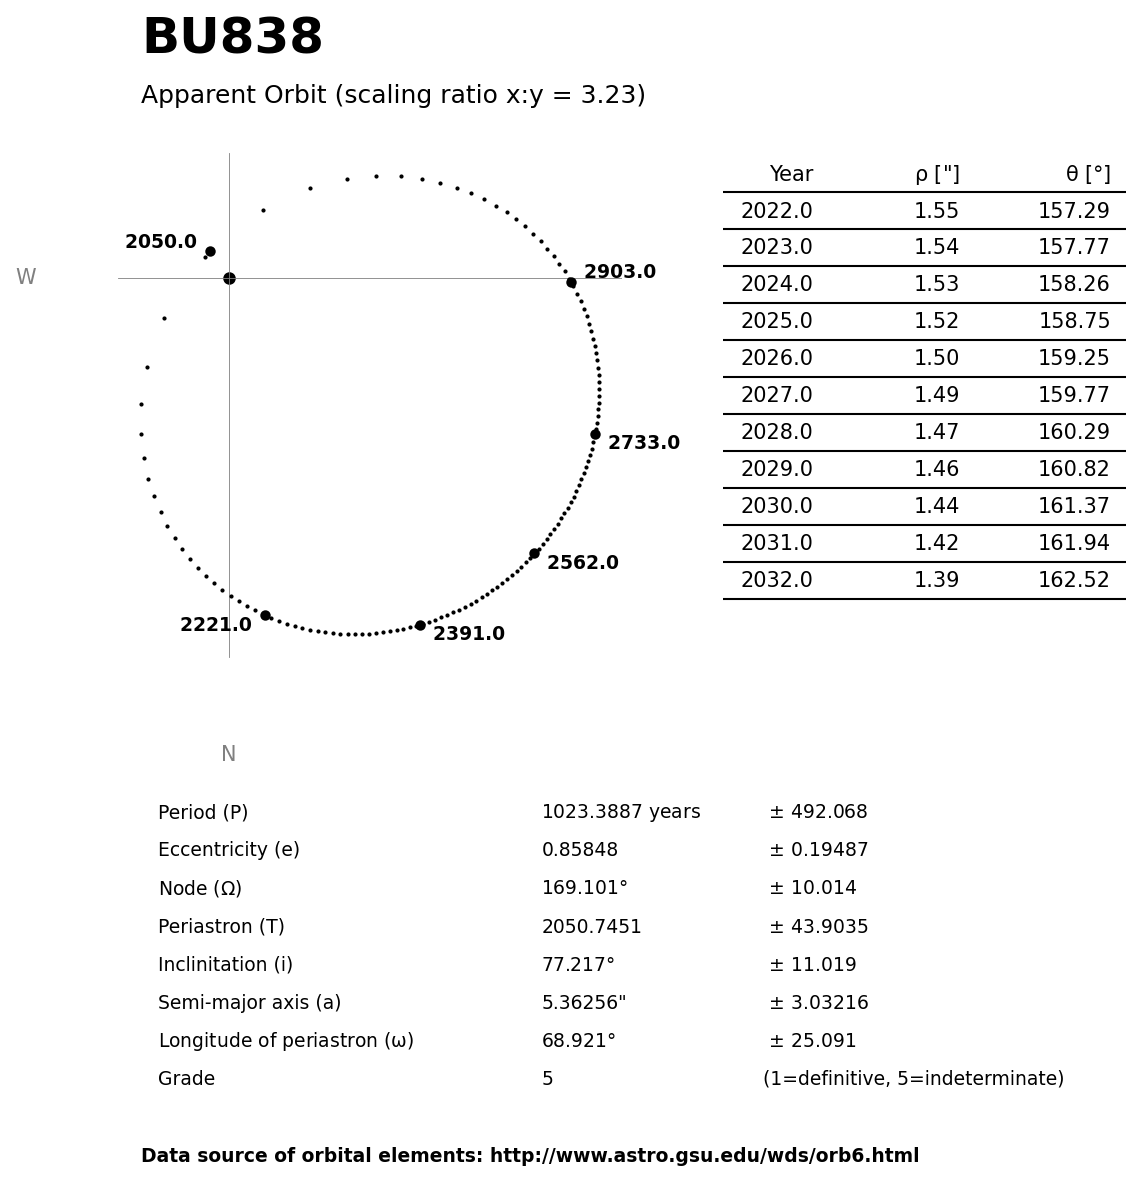 ../images/binary-star-orbits/BU838-orbit.jpg